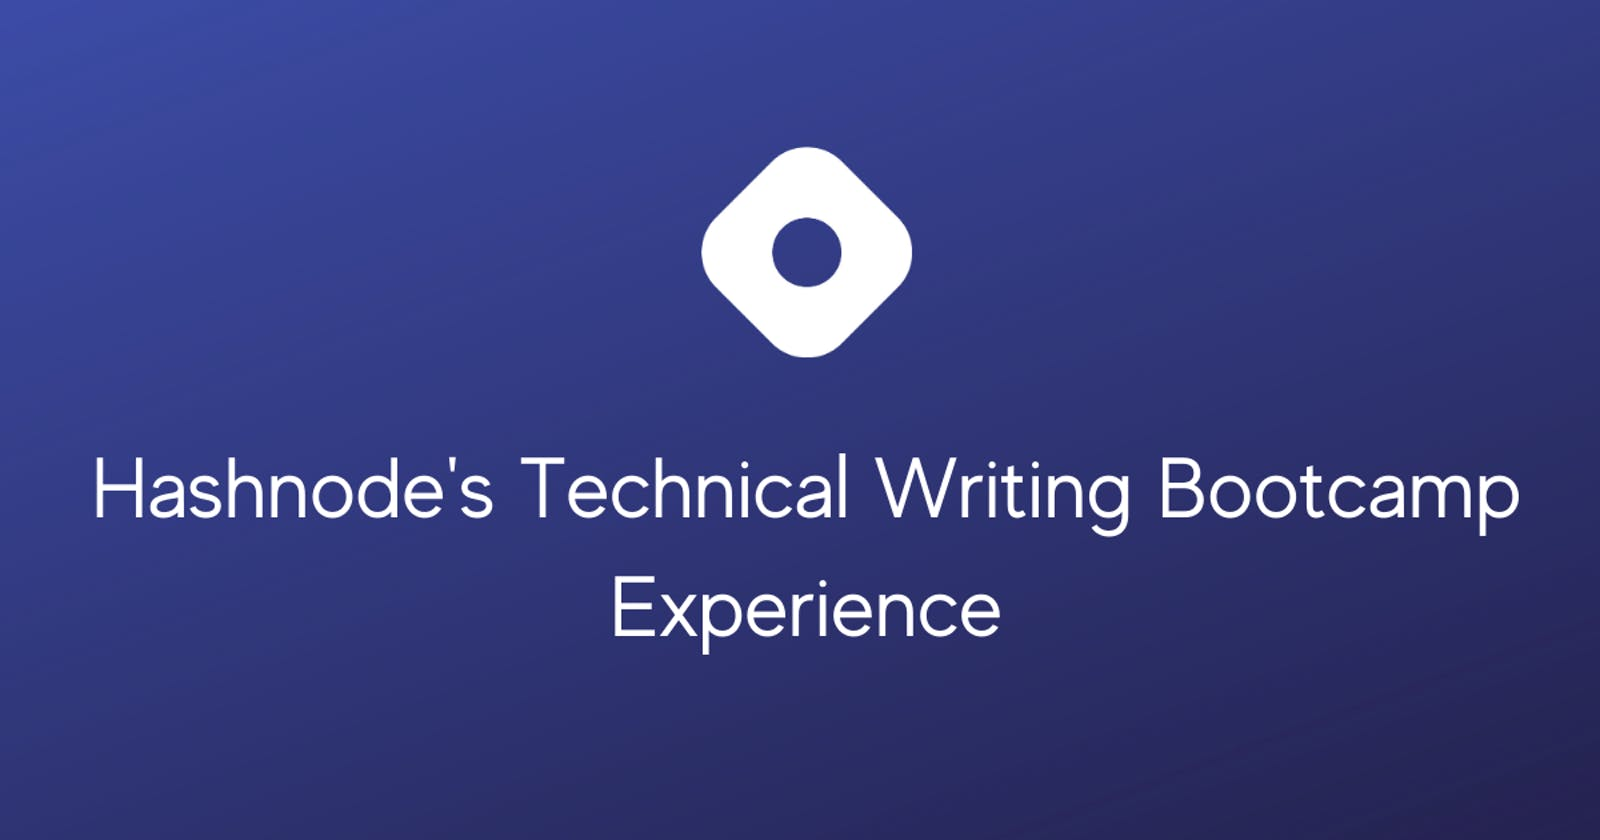 Hashnode Technical Writing Bootcamp Experience